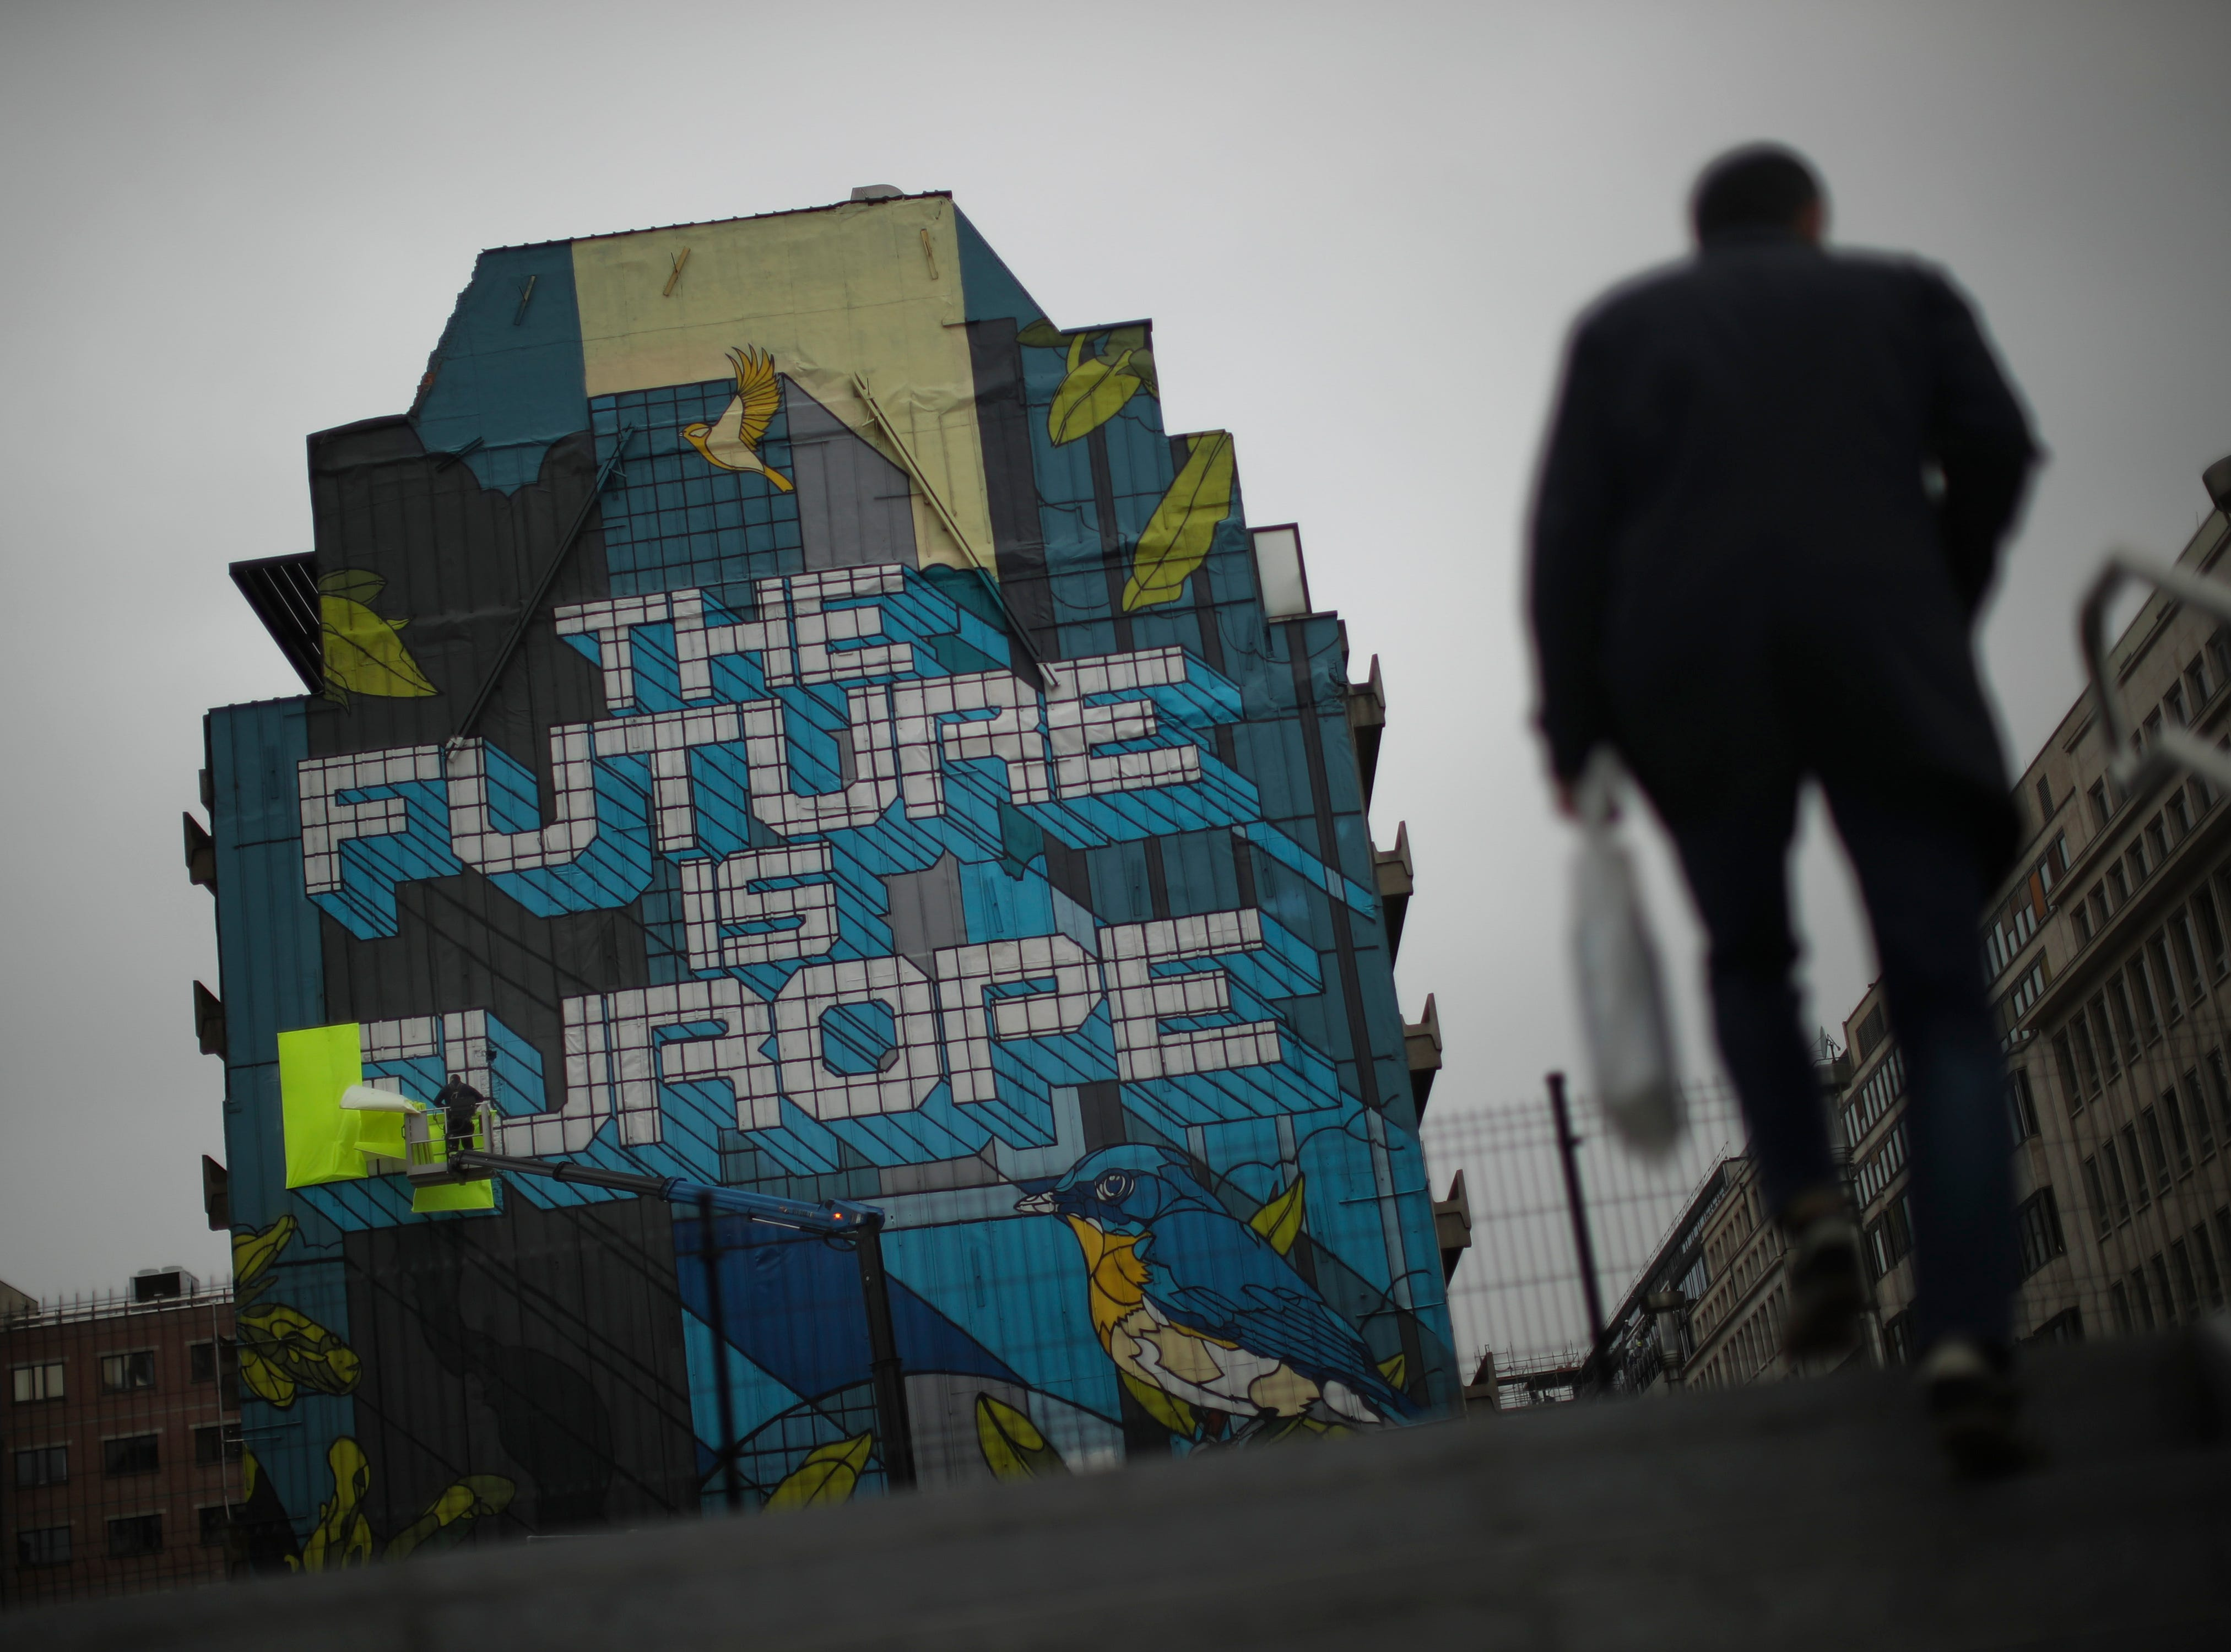 """A worker removes yellow banners, placed by supporters of the """"yellow vest"""" movement, that covered the word """"Europe"""" of a large graffiti for a few days in Brussels, Monday, May 20, 2019. Some 400 million Europeans from 28 countries will head to the polls May 23-26 to choose lawmakers to represent them at the European Parliament for the next five years."""